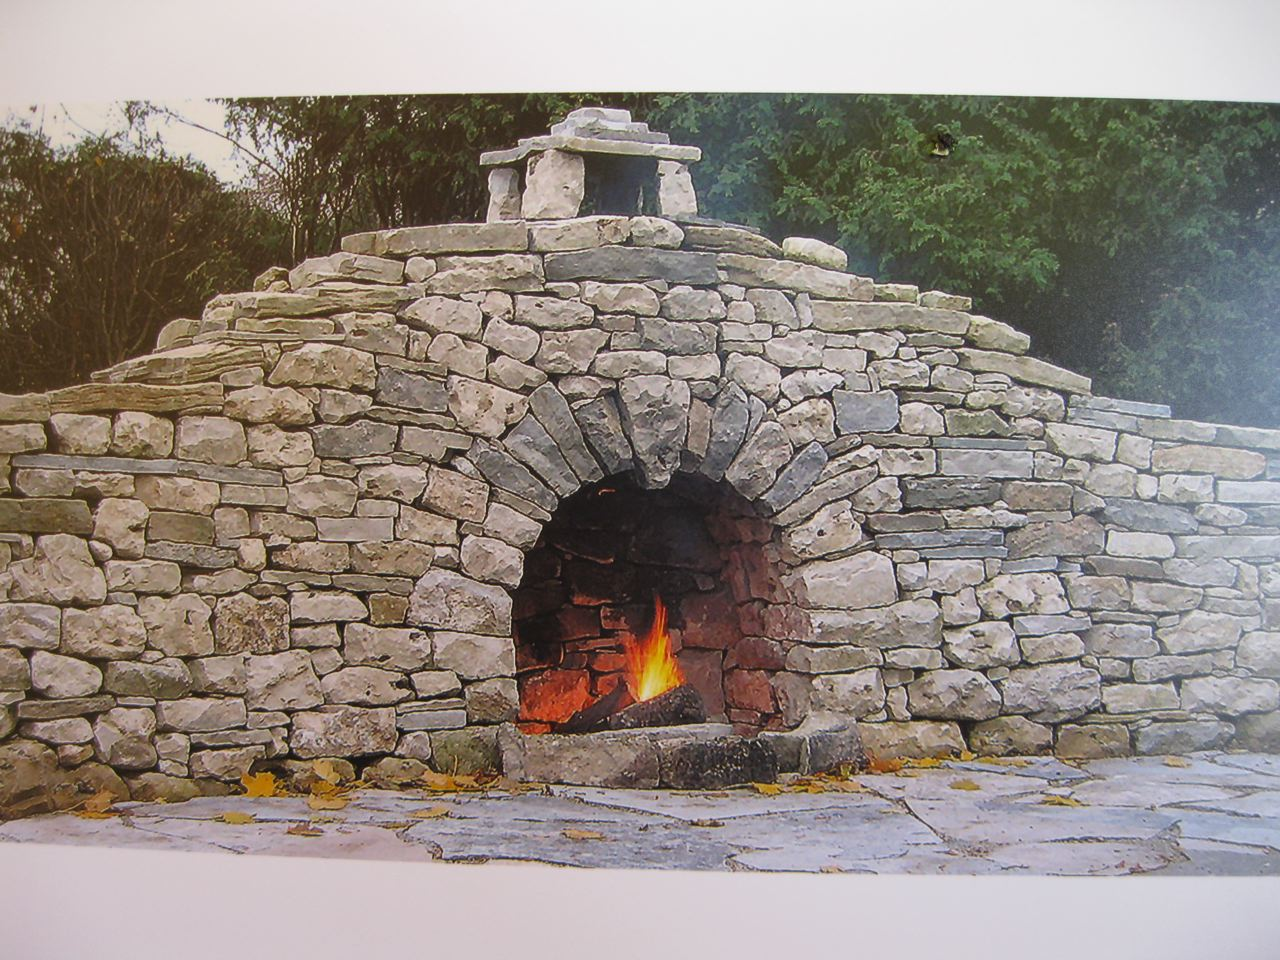 Dswac Outdoor Dry Stone Fireplace Contest Dswac